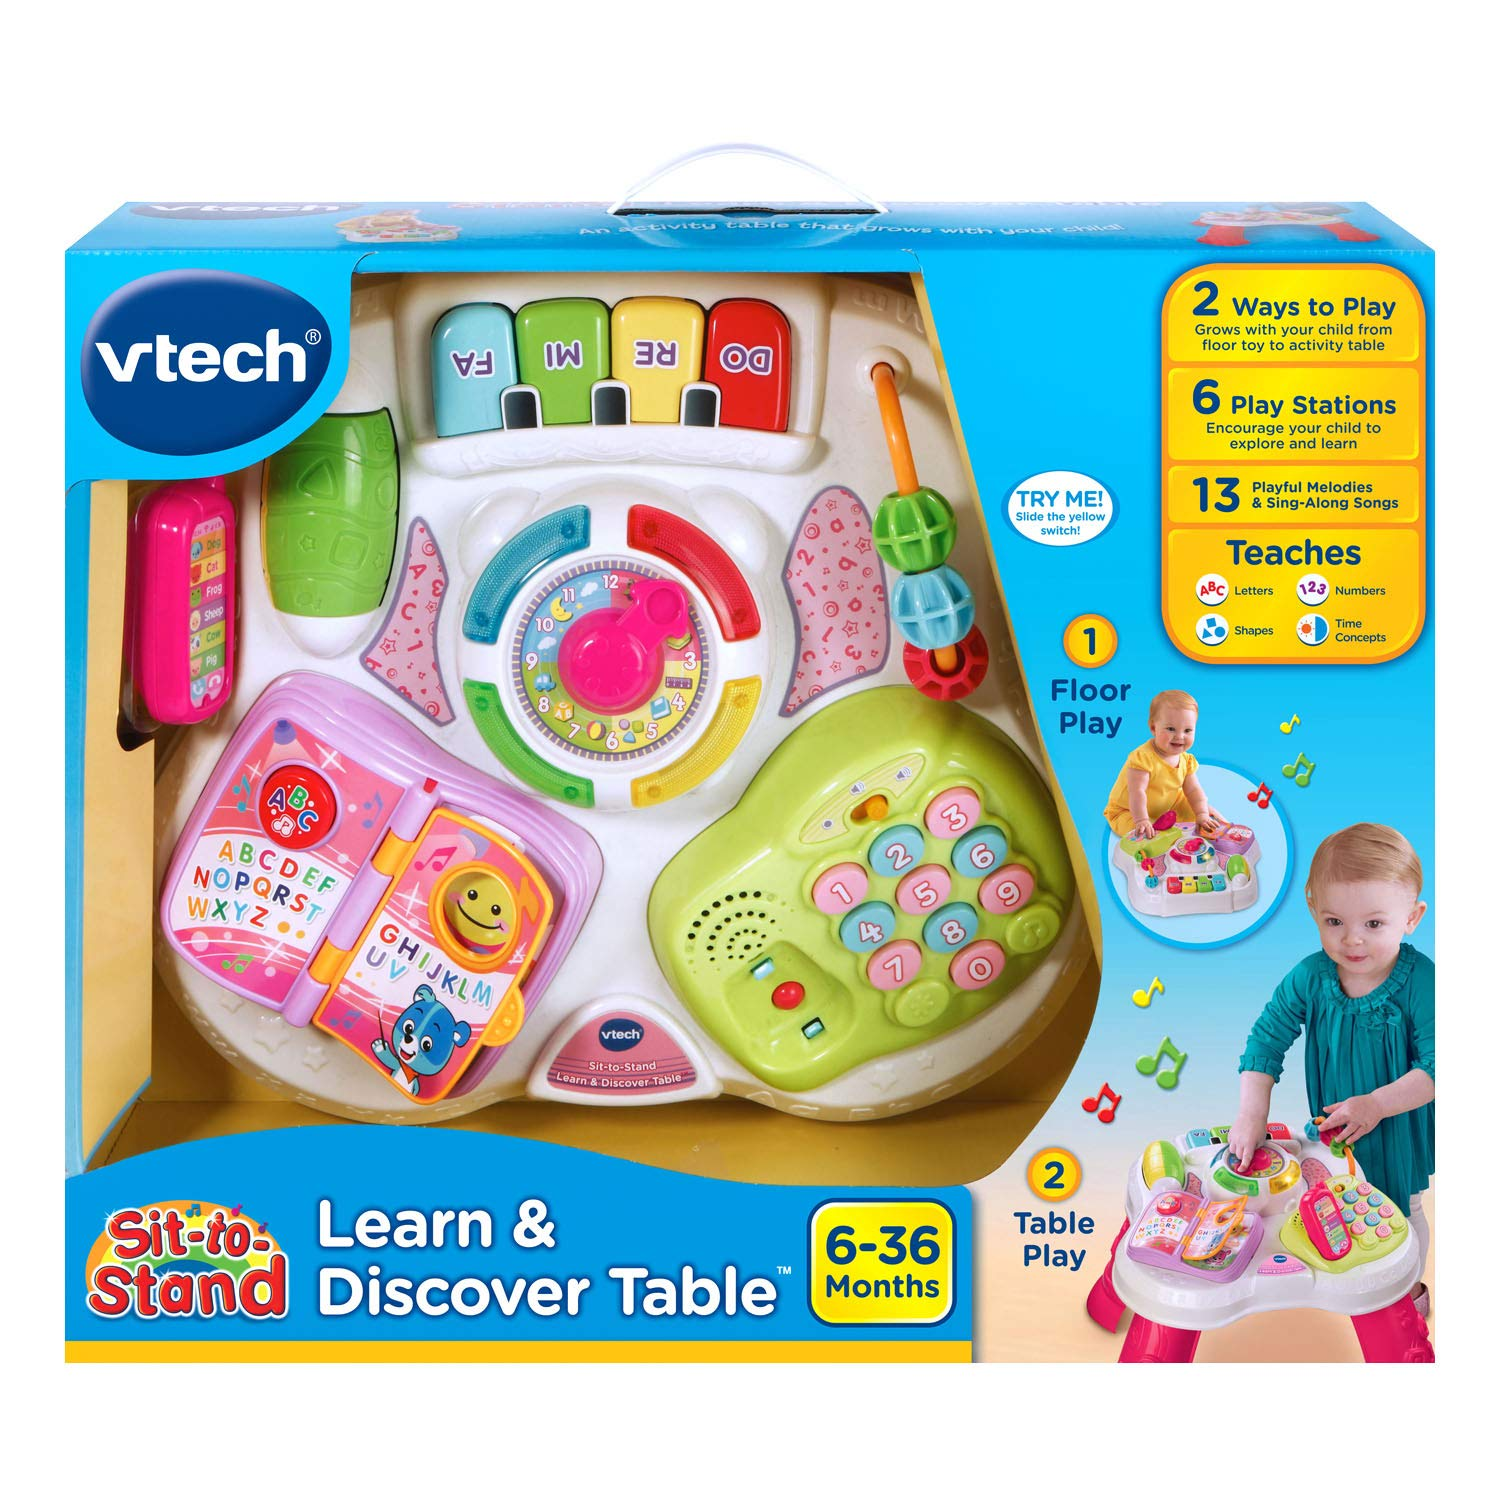 VTech Sit-To-Stand Learn & Discover Table, Pink by VTech (Image #6)